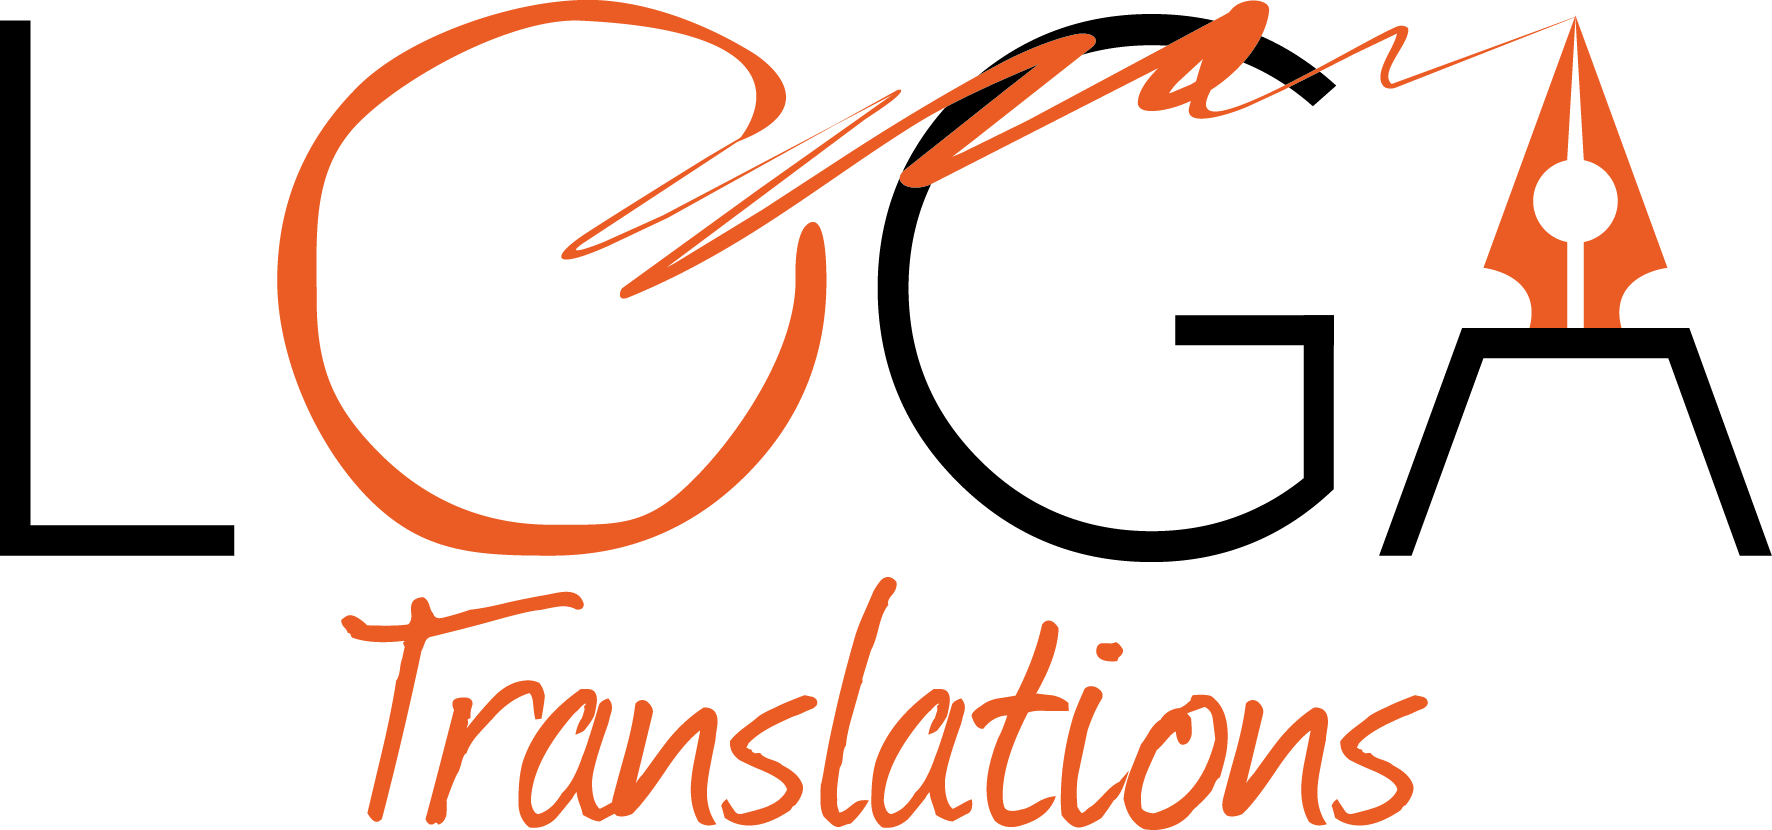 Loga Translations – Top Quality Translation, localisation and proofreading